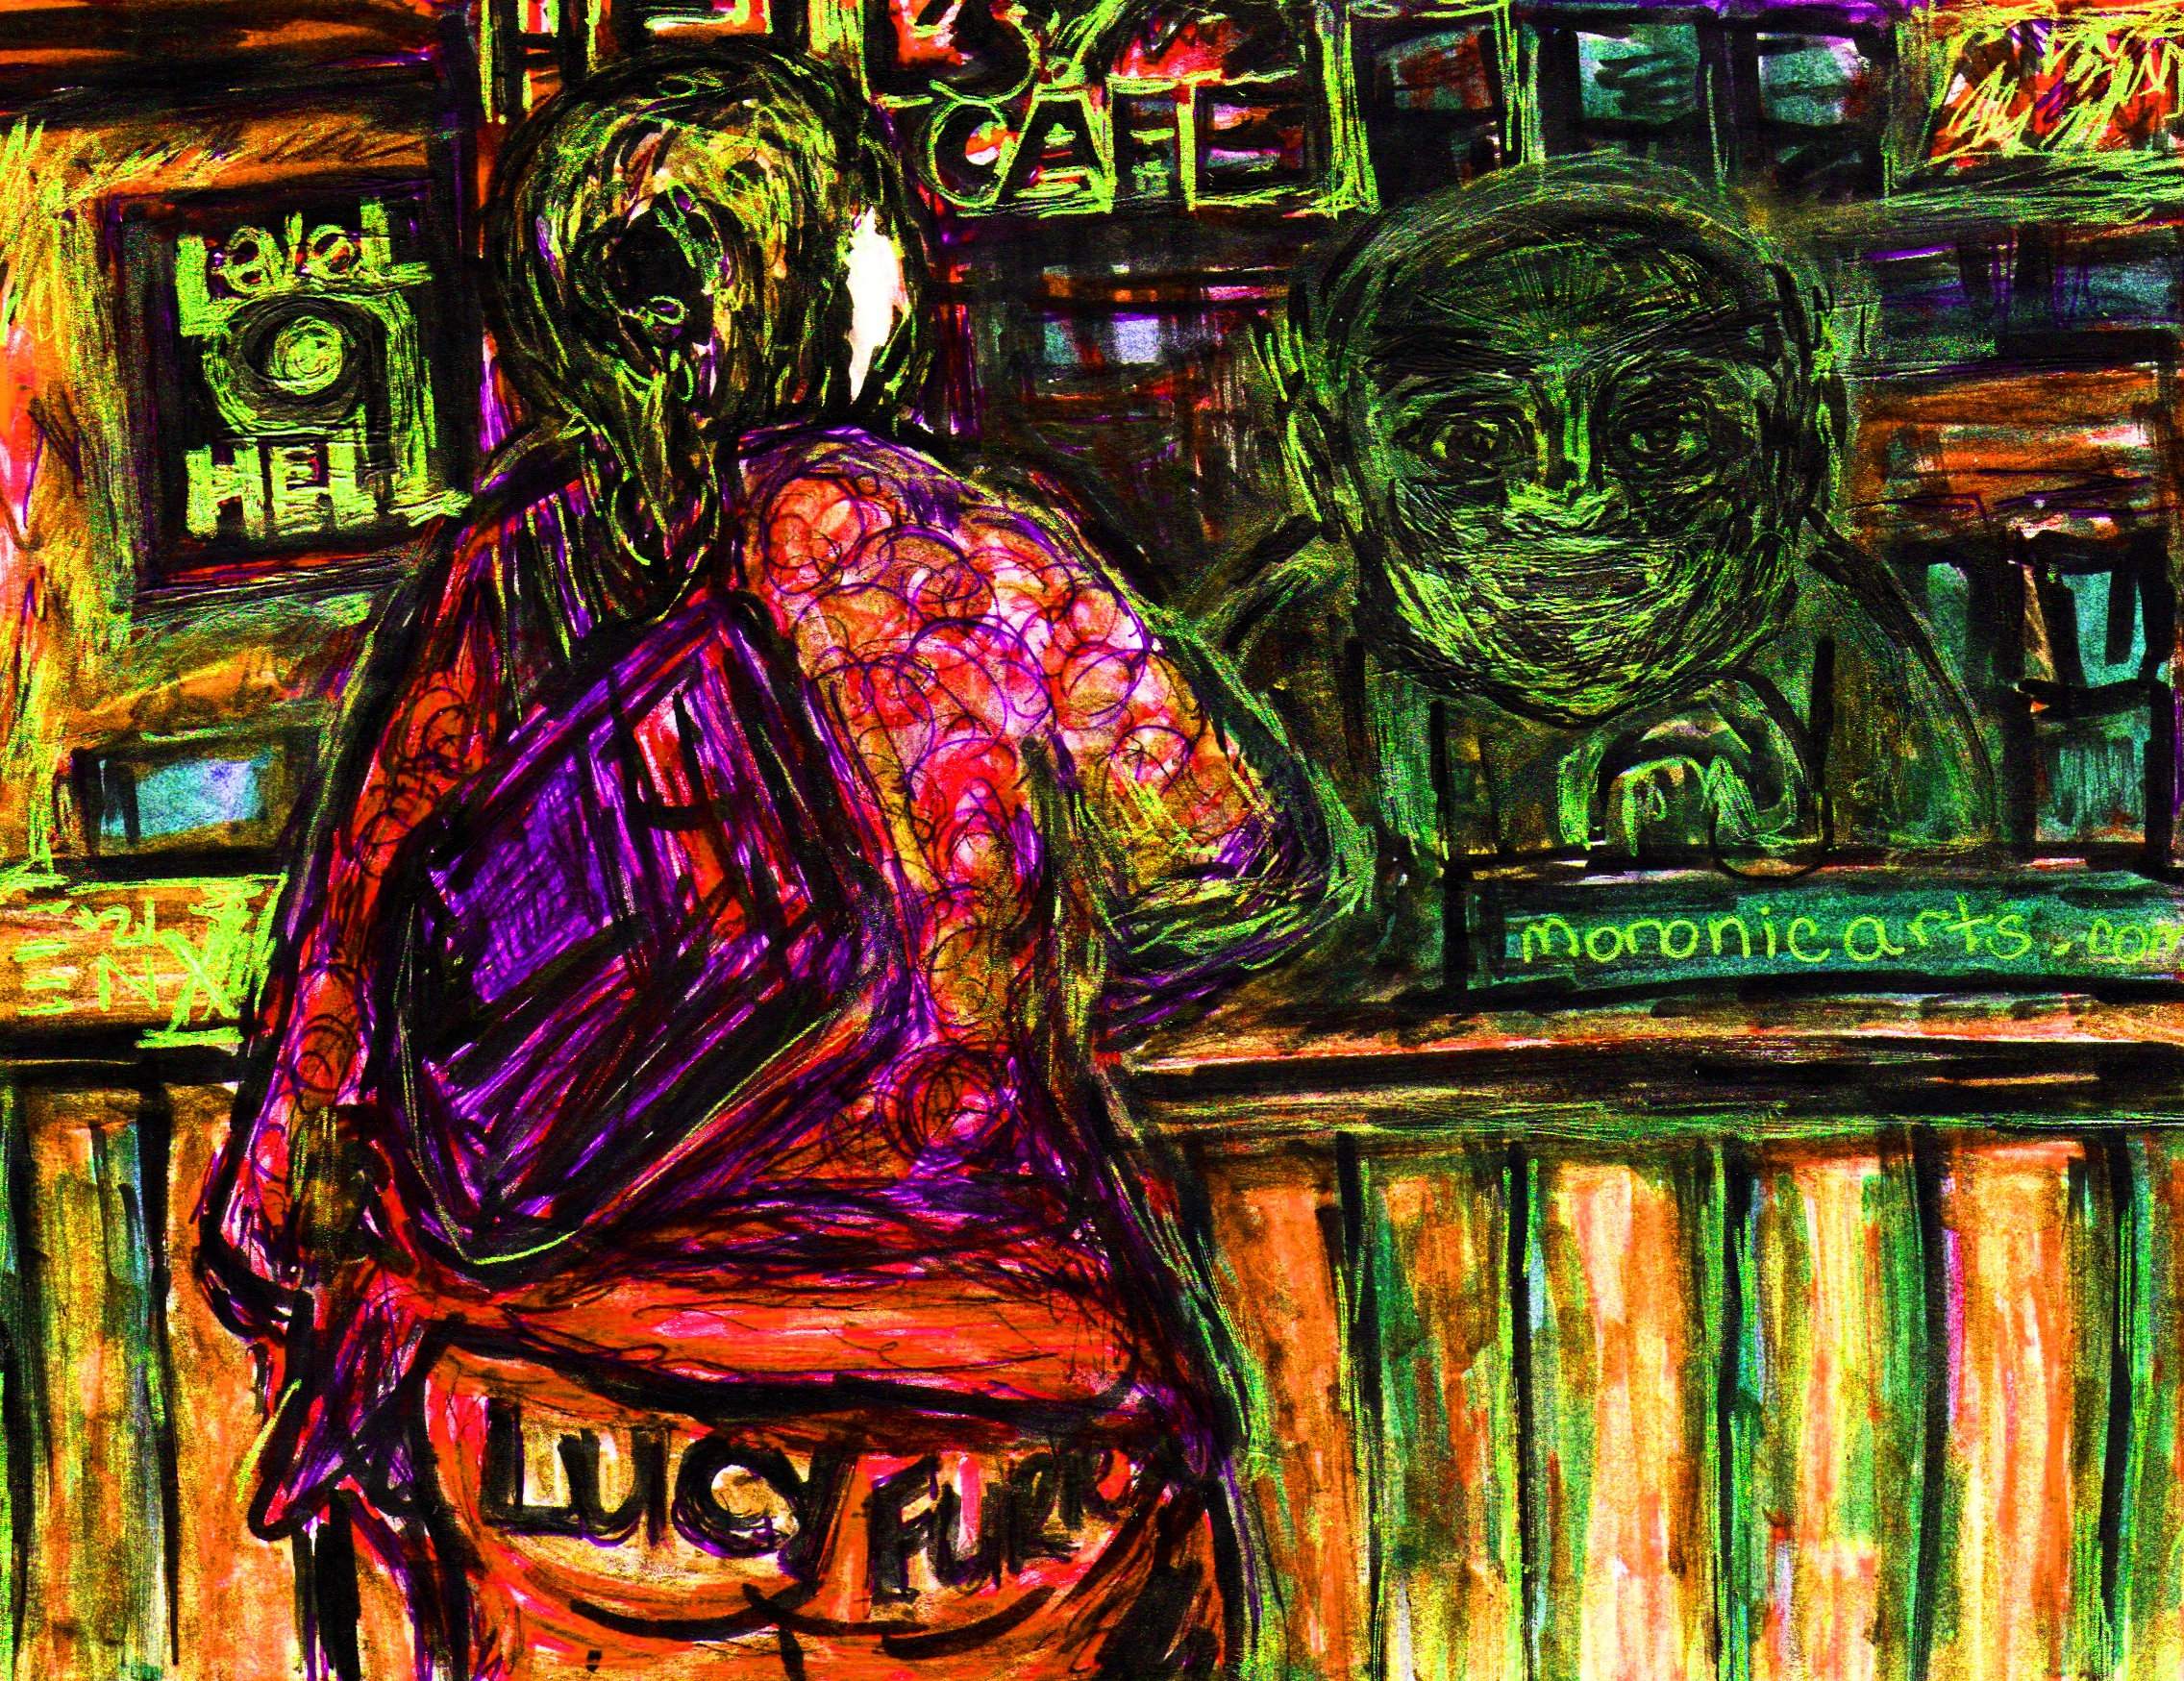 """Image: Full color cartoon of a coffeehouse. A large woman wearing a pink outfit can be seen in the foreground, and a green ogre behind the coffee bar. text reads """"Level 9 Hell. Hell's Cafe."""""""